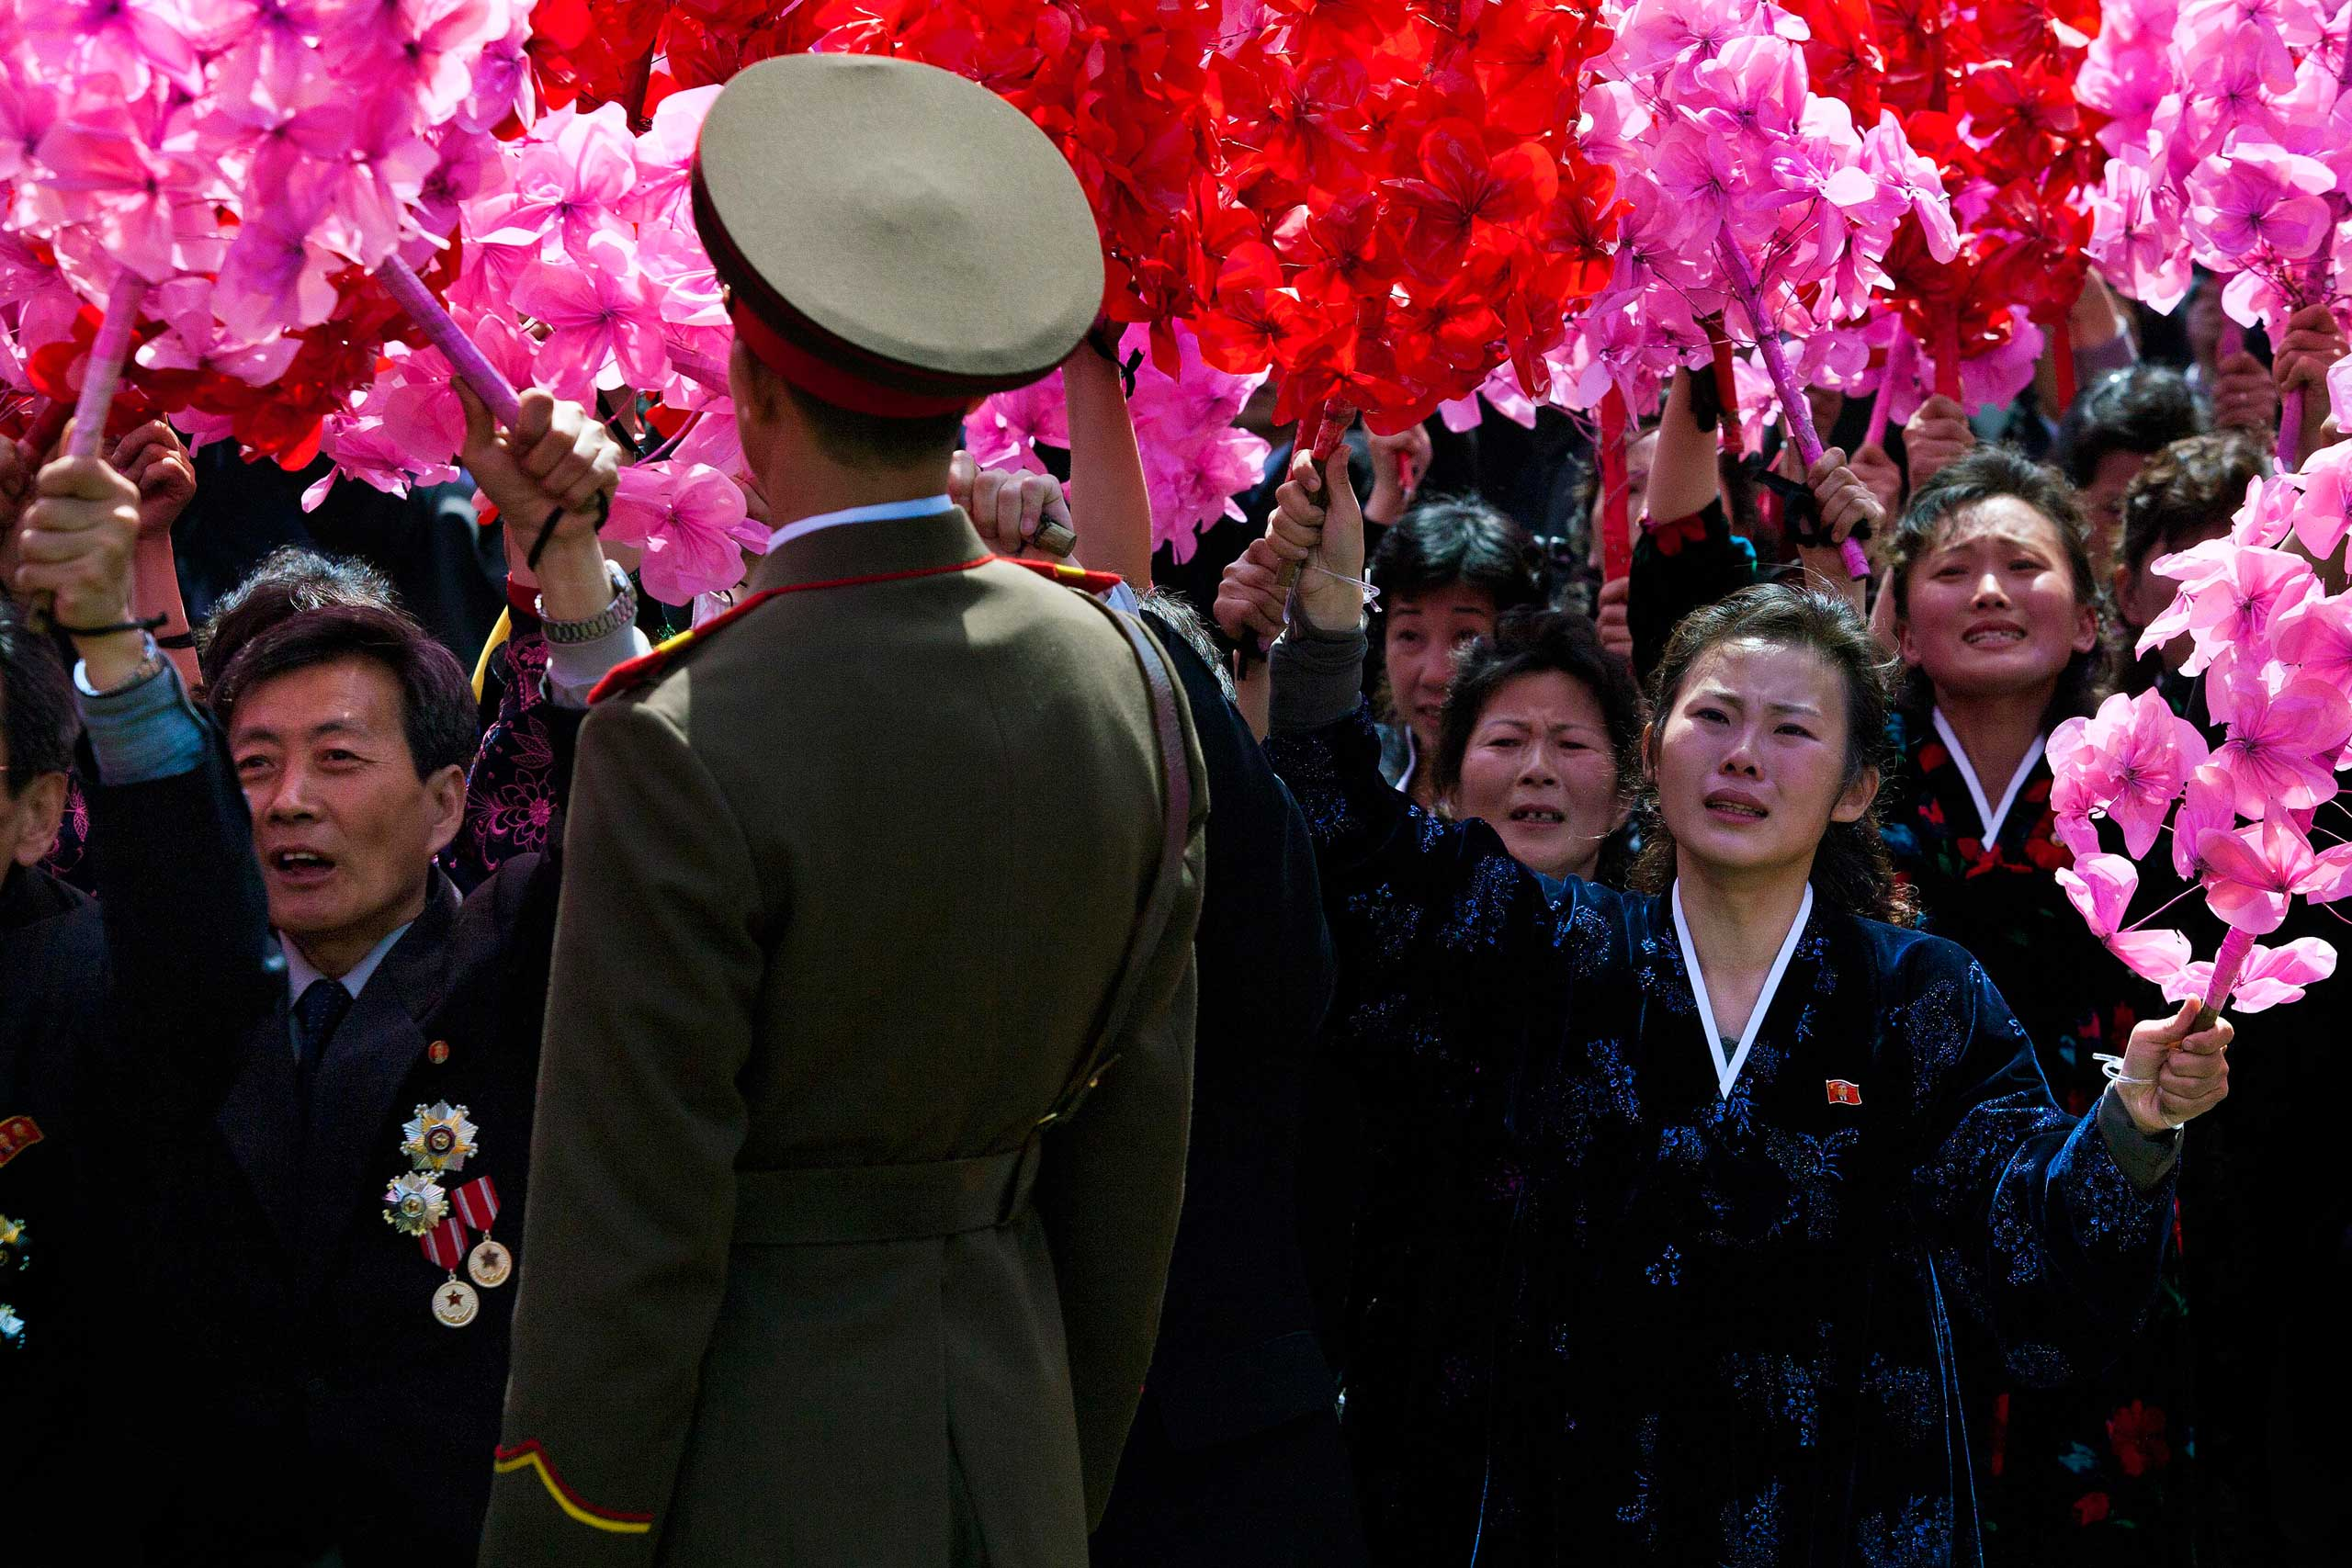 April 15, 2012. North Korean civilians, some weeping, wave flowers as they look up at North Korean leader Kim Jong-Un, unseen, at the end of a mass military parade in Pyongyang's Kim Il Sung Square to celebrate 100 years since the birth of the late North Korean founder Kim Il-Sung.